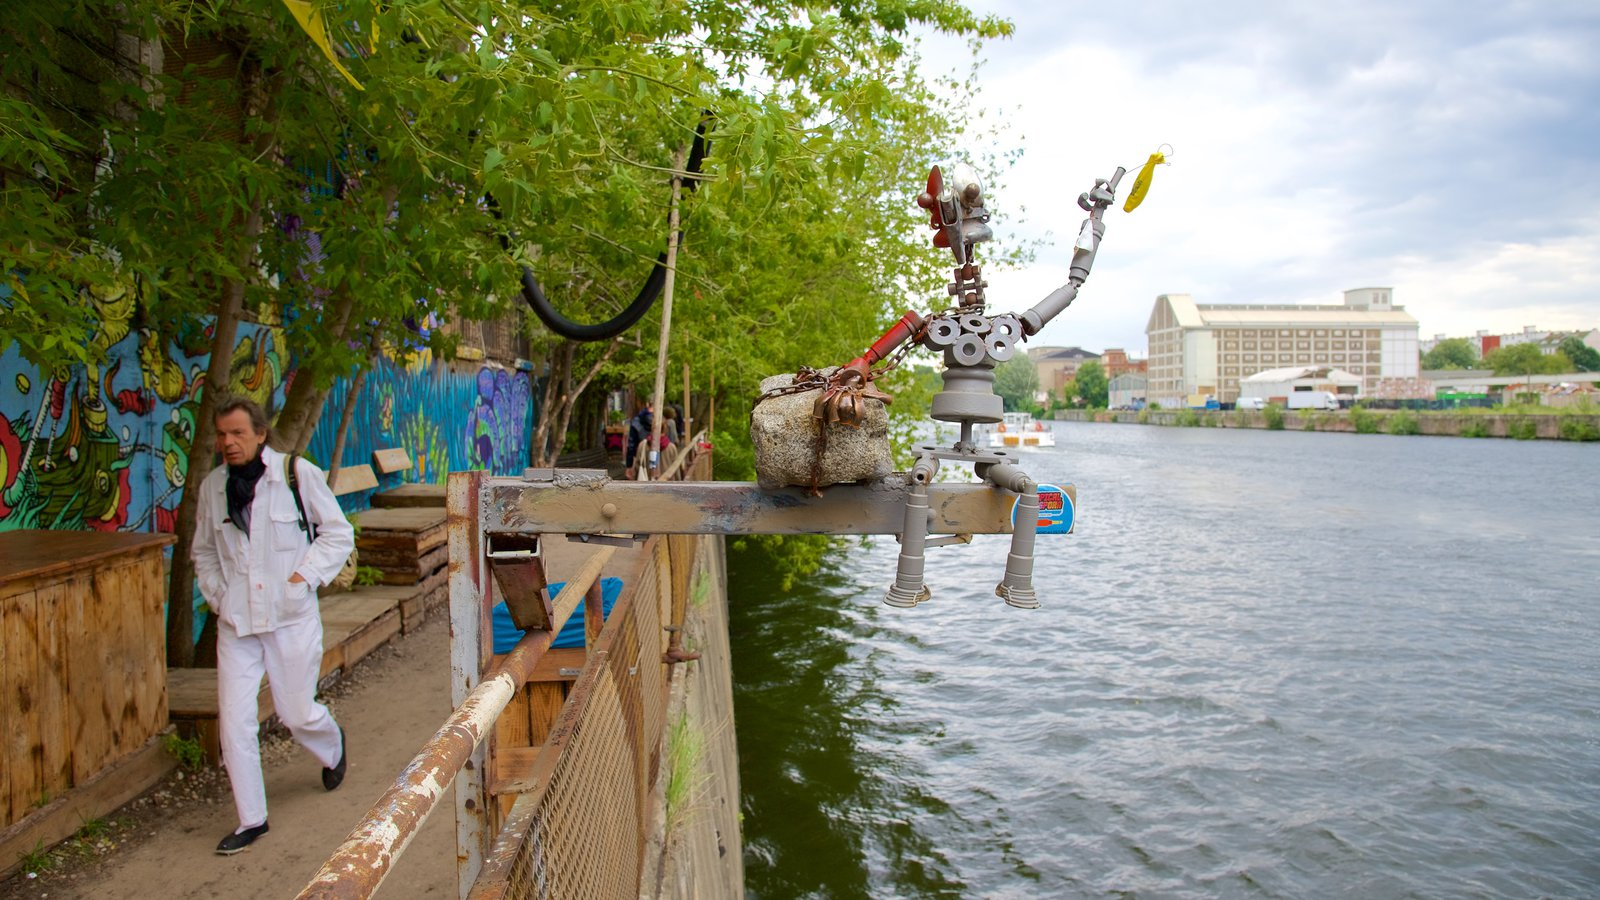 Friedrichshain showing outdoor art and a river or creek as well as an individual male